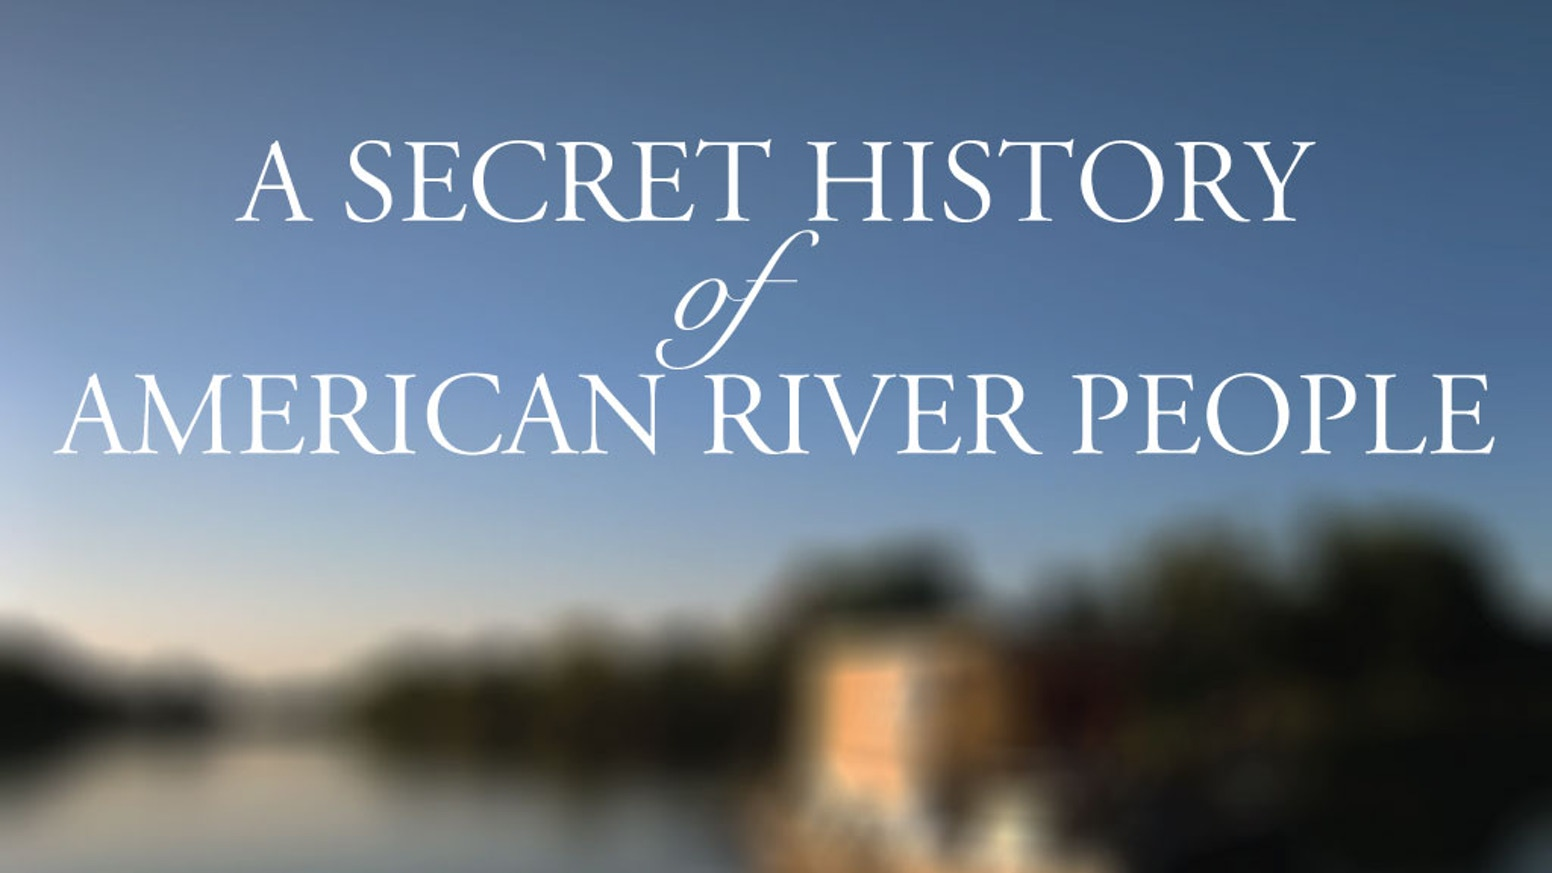 A journey to rediscover the lost narratives of river people, river communities, and the river itself.